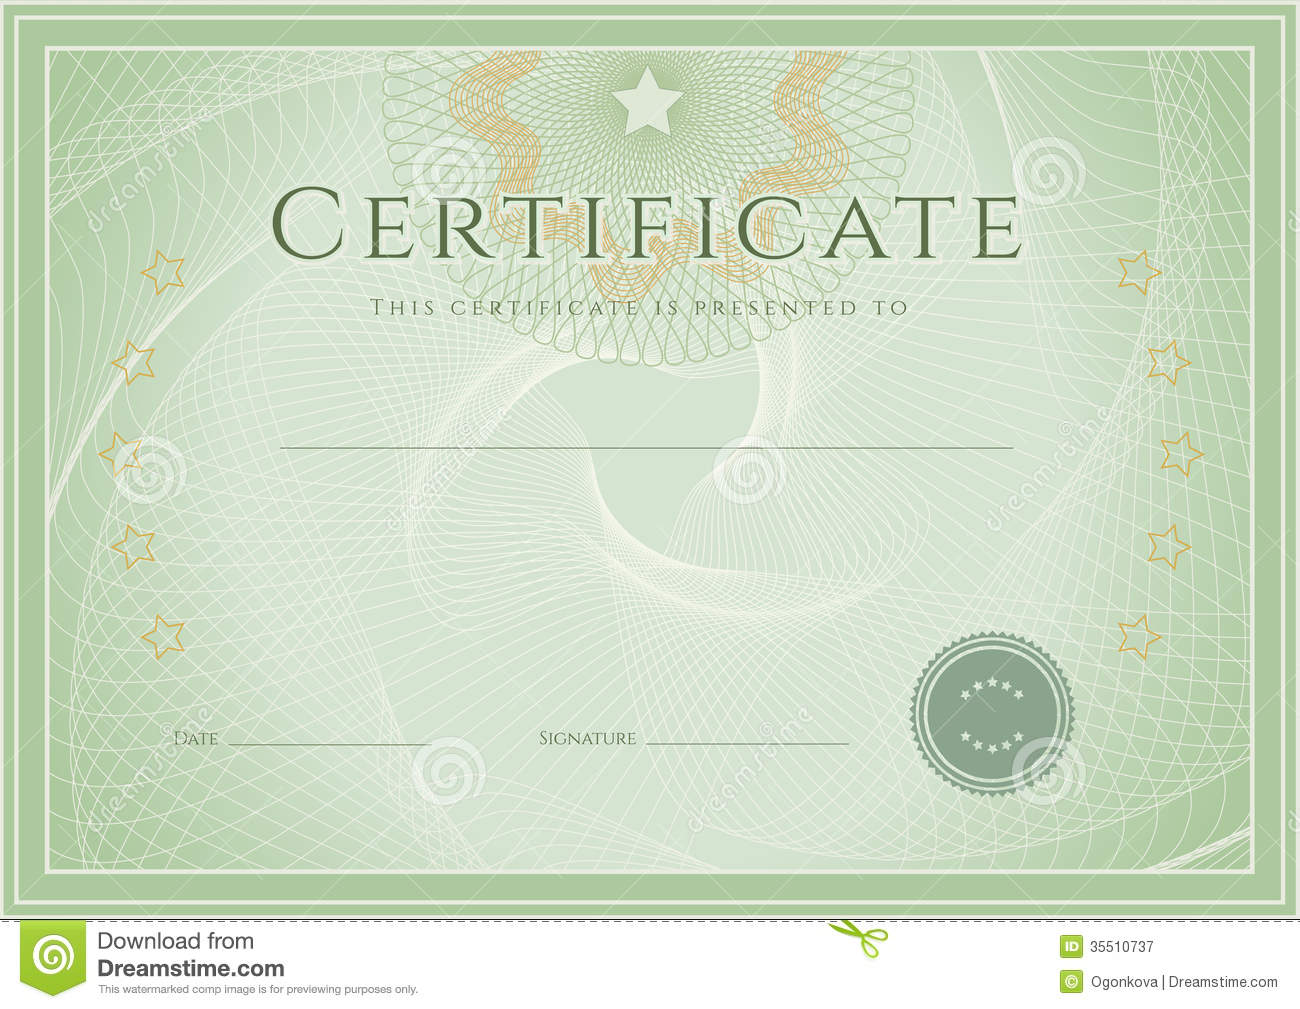 Certificate Diploma Award Template Grunge Patte Royalty Free – Free Award Template